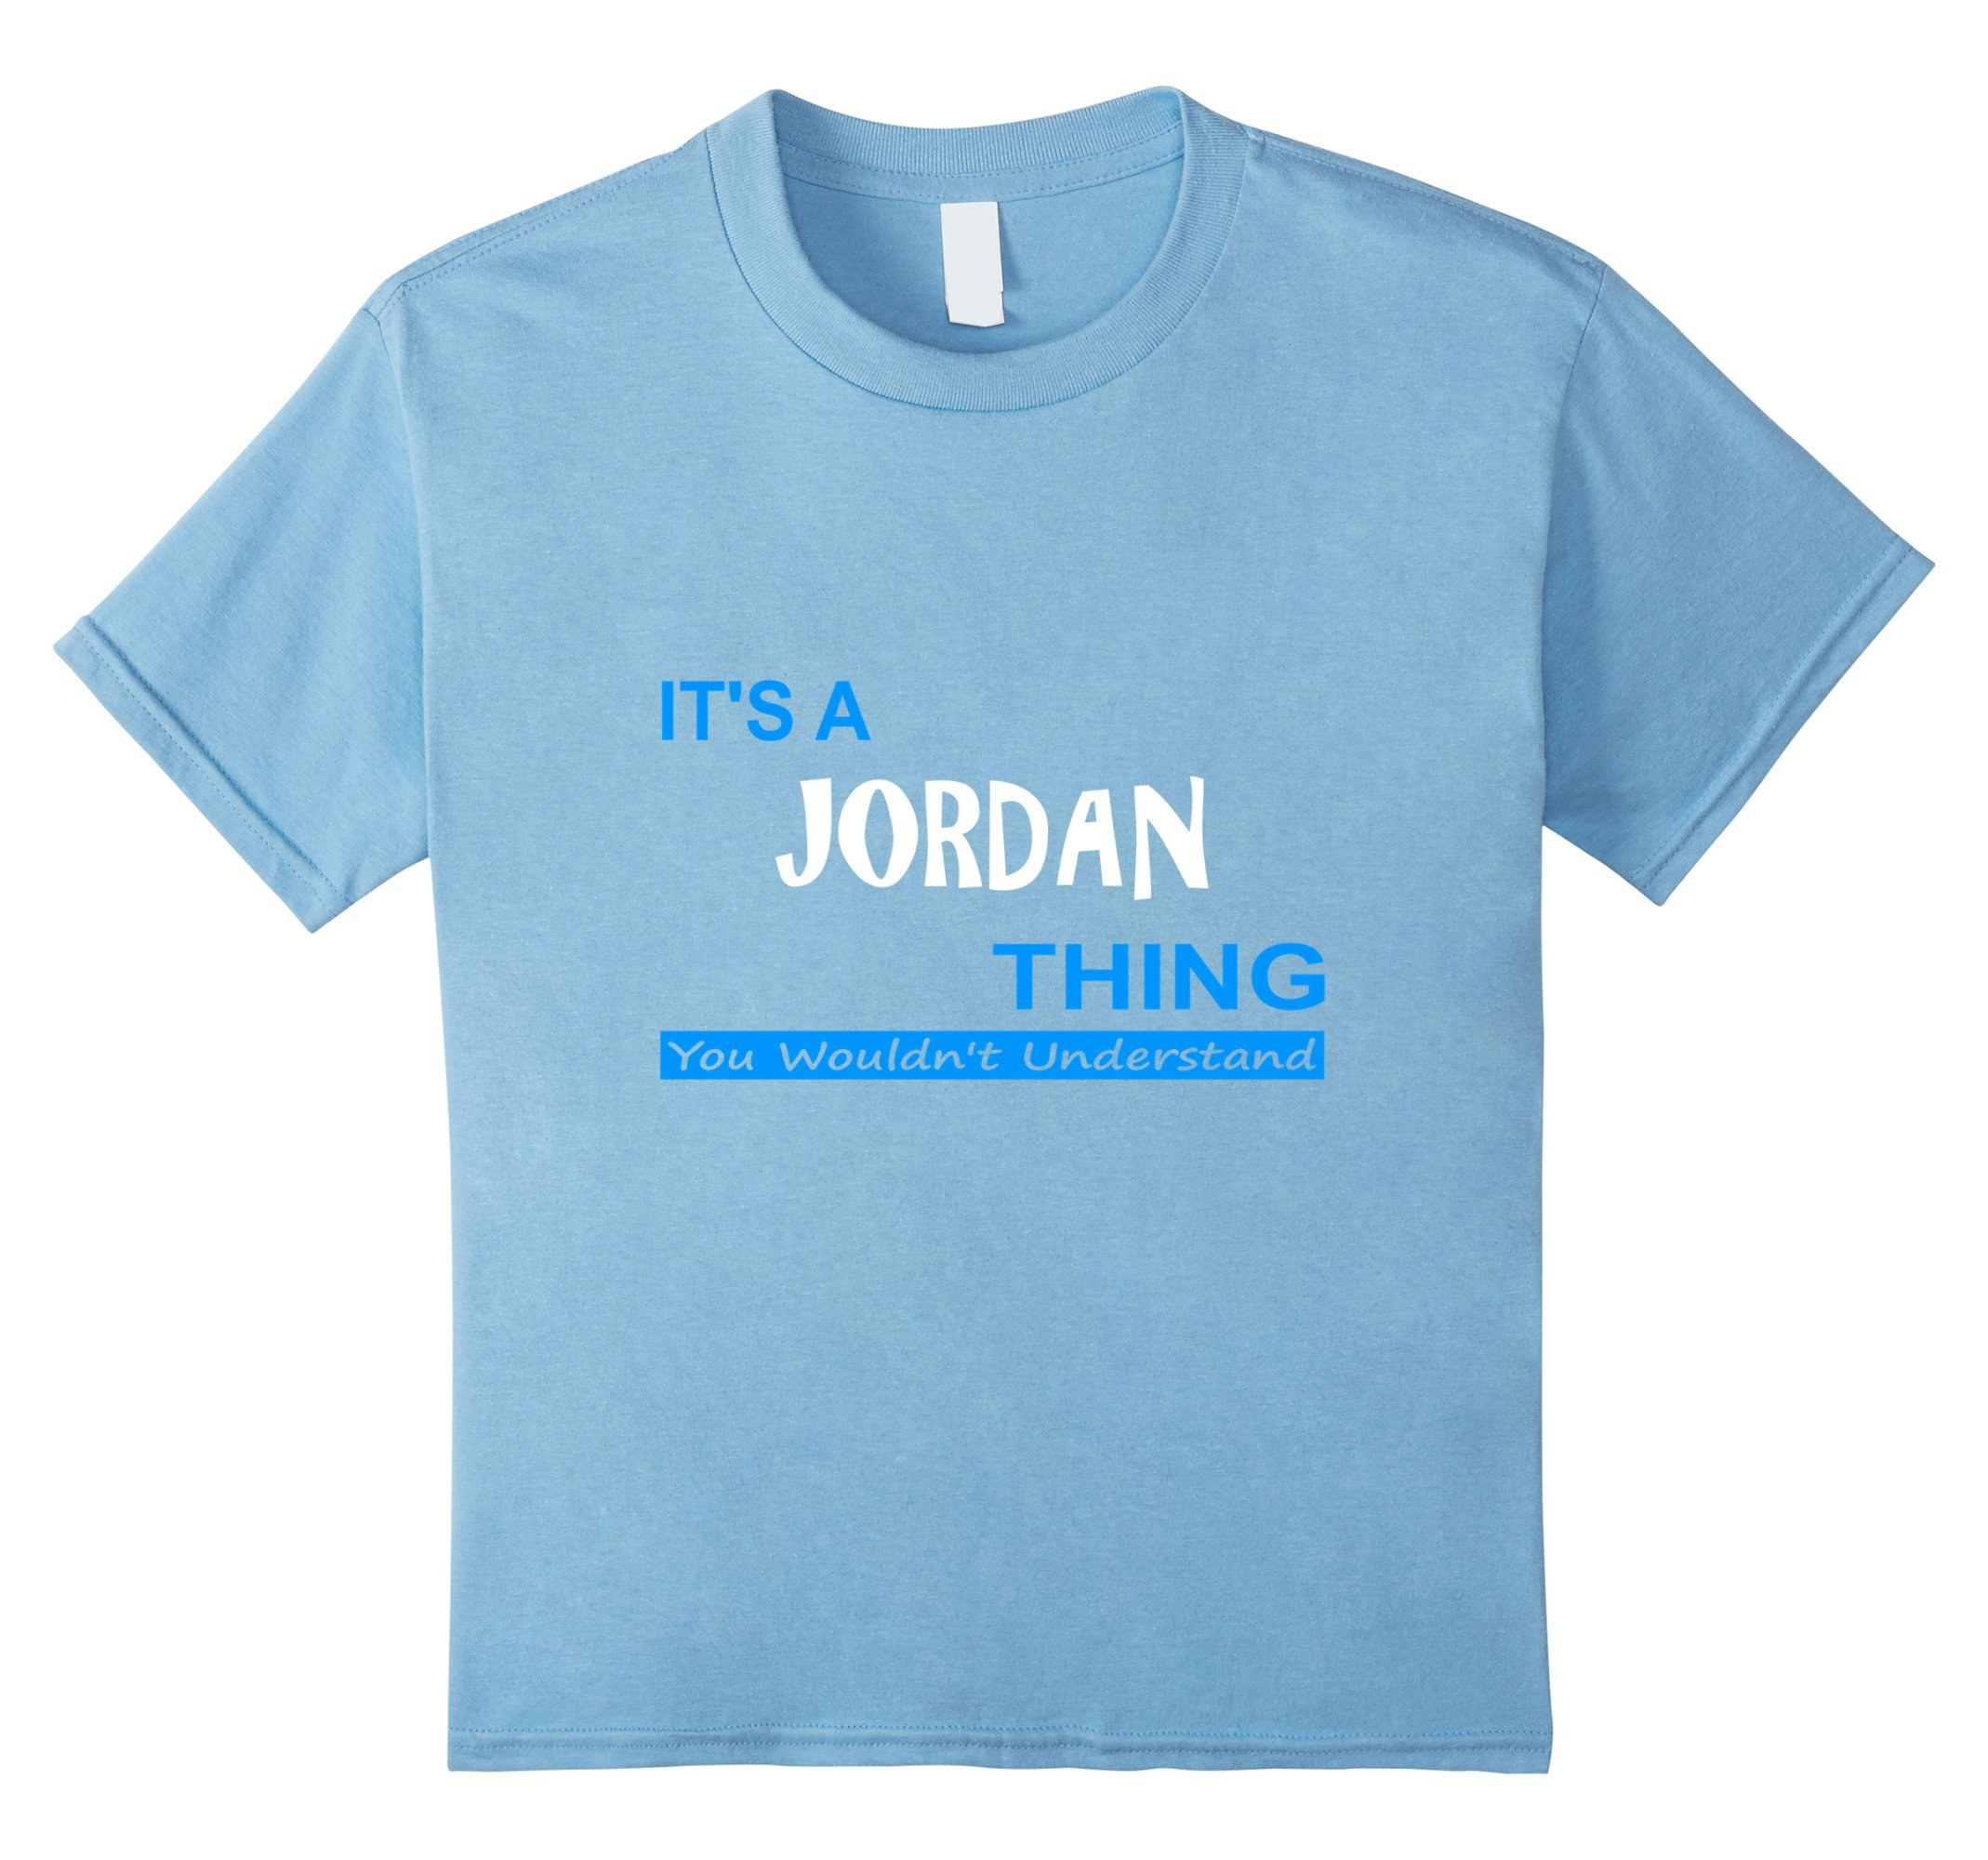 Kids ''It's a Jordan Thing, You Wouldn't Understand'' T-Shirt 10 Baby Blue